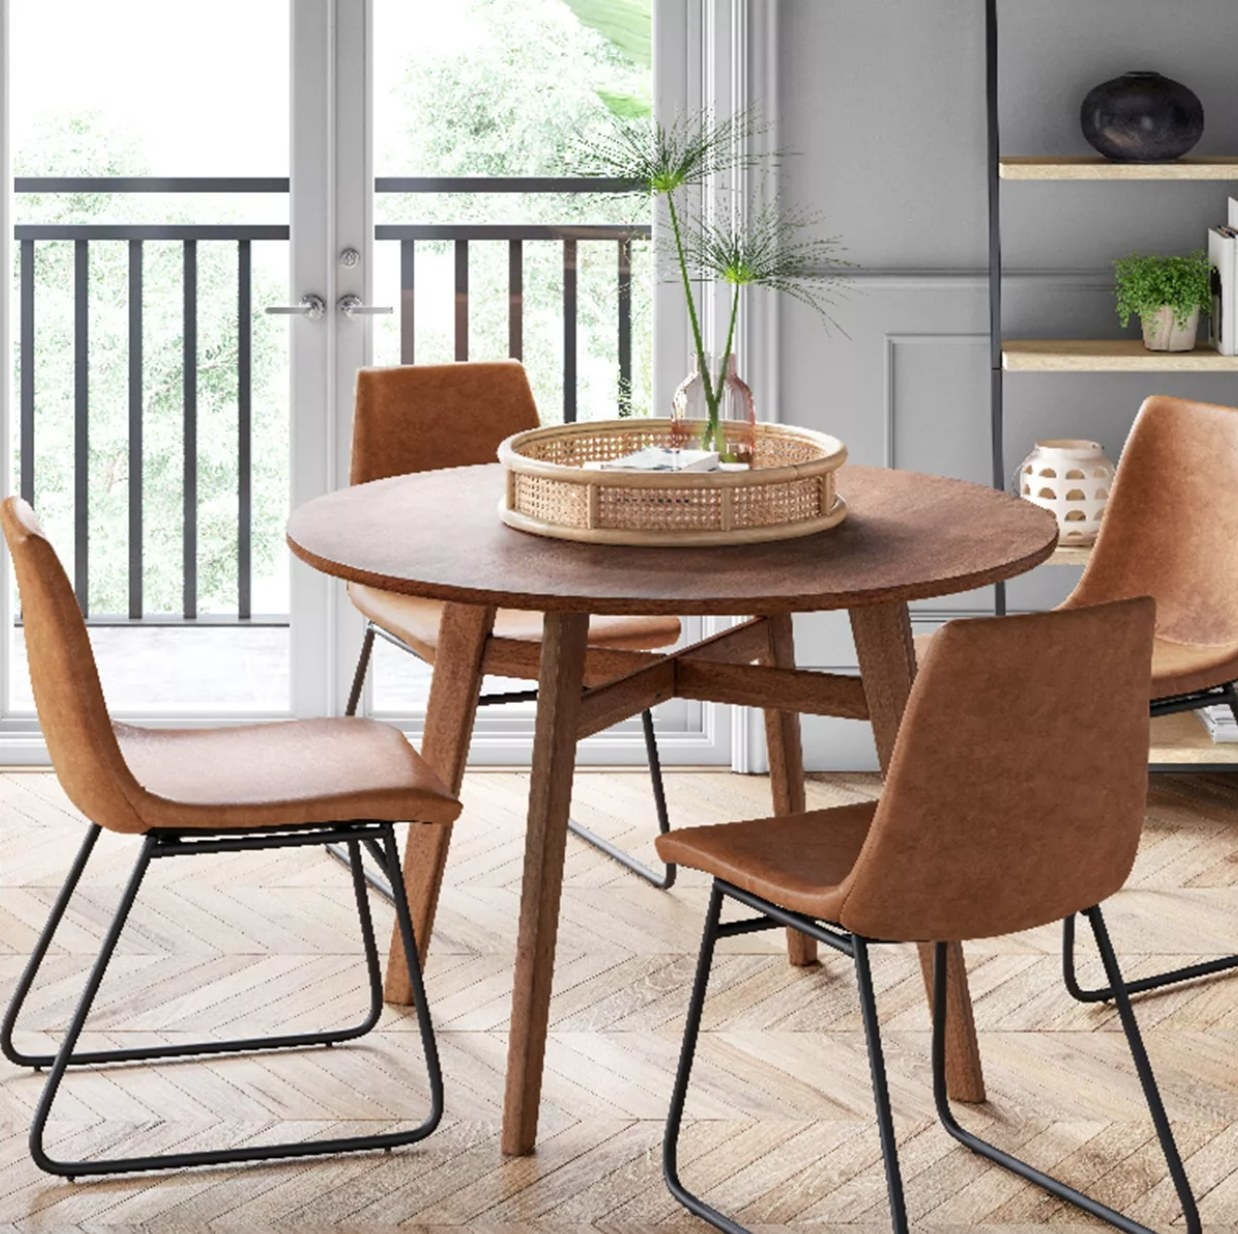 Brown faux leather dining chairs with metal legs